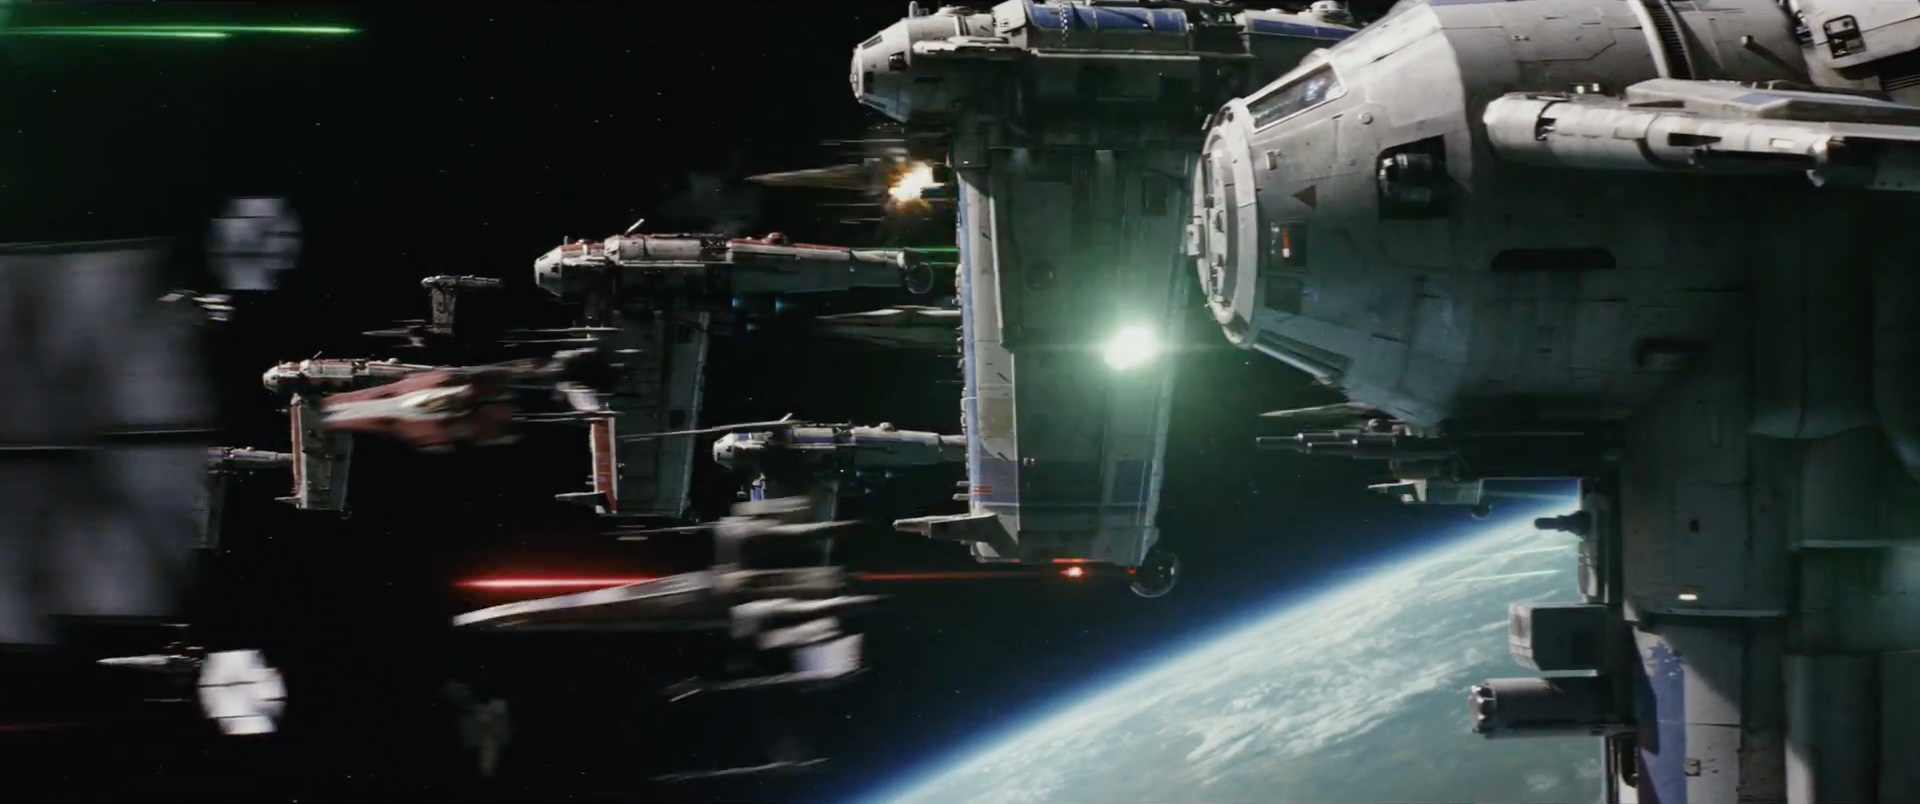 Star Wars: The Last Jedi Official Teaser Trailer   Concept ... - photo#45